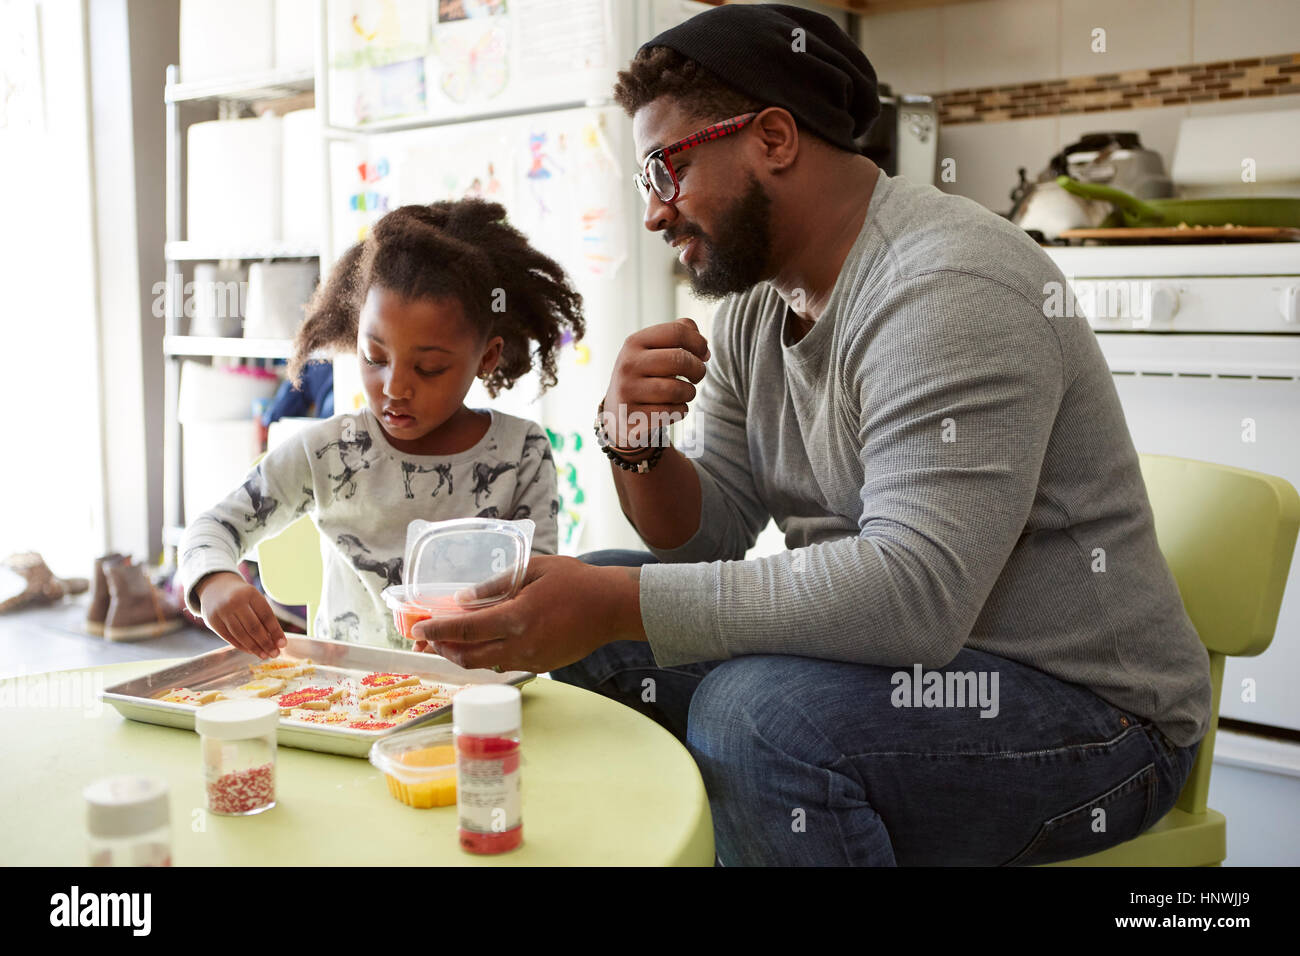 Father and daughter decorating unbaked cookies - Stock Image